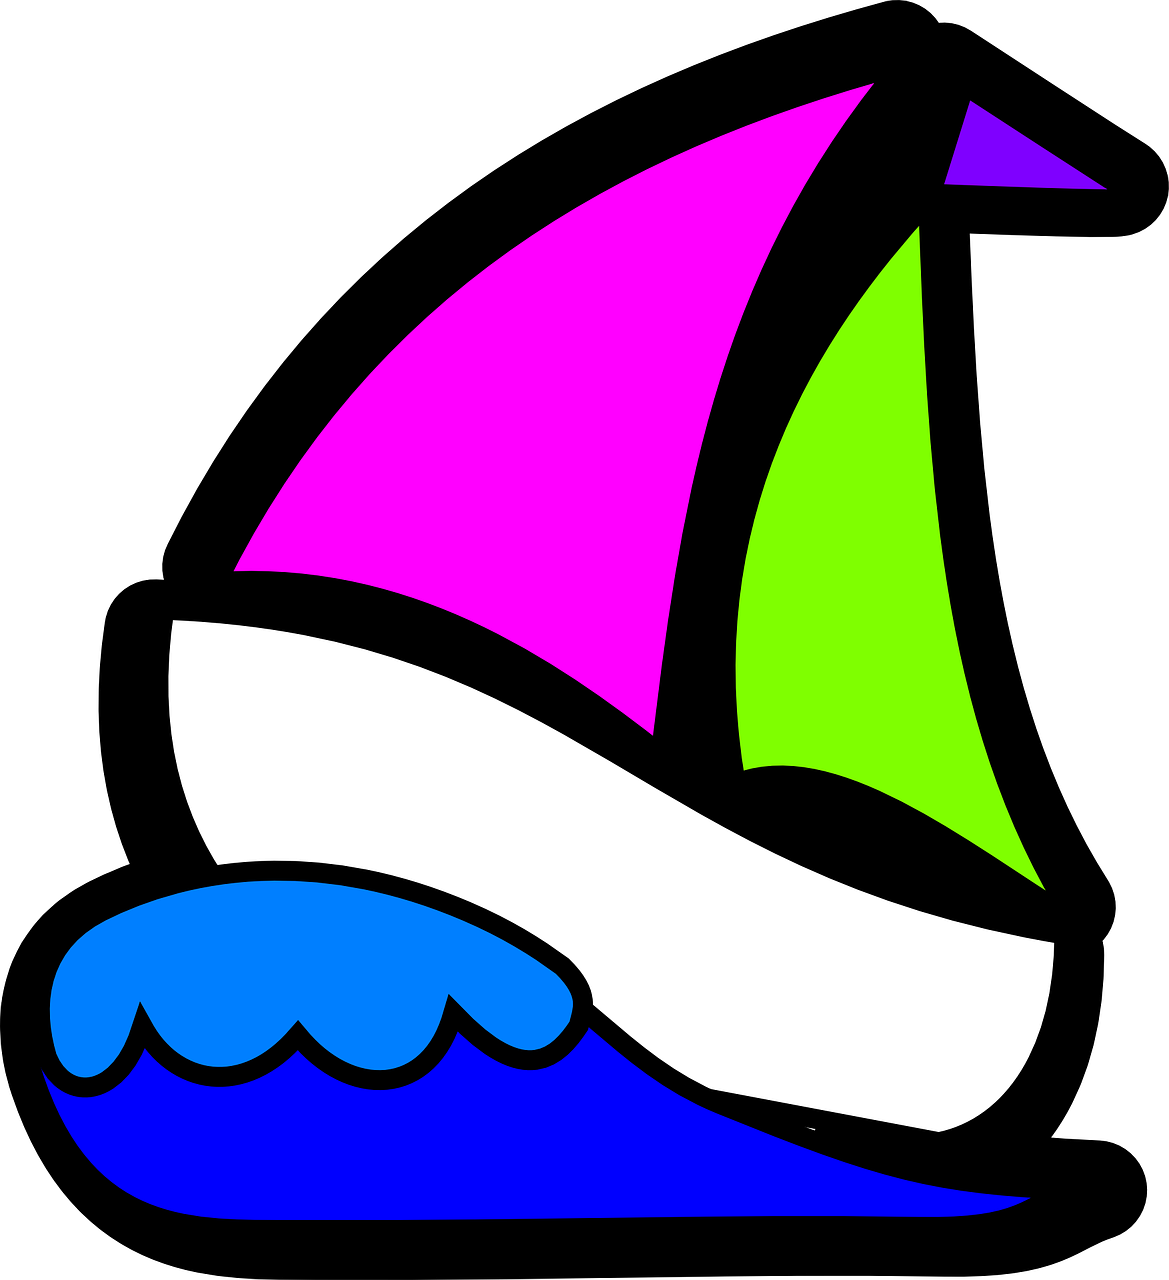 clip freeuse download yacht clipart colorful boat #85758848